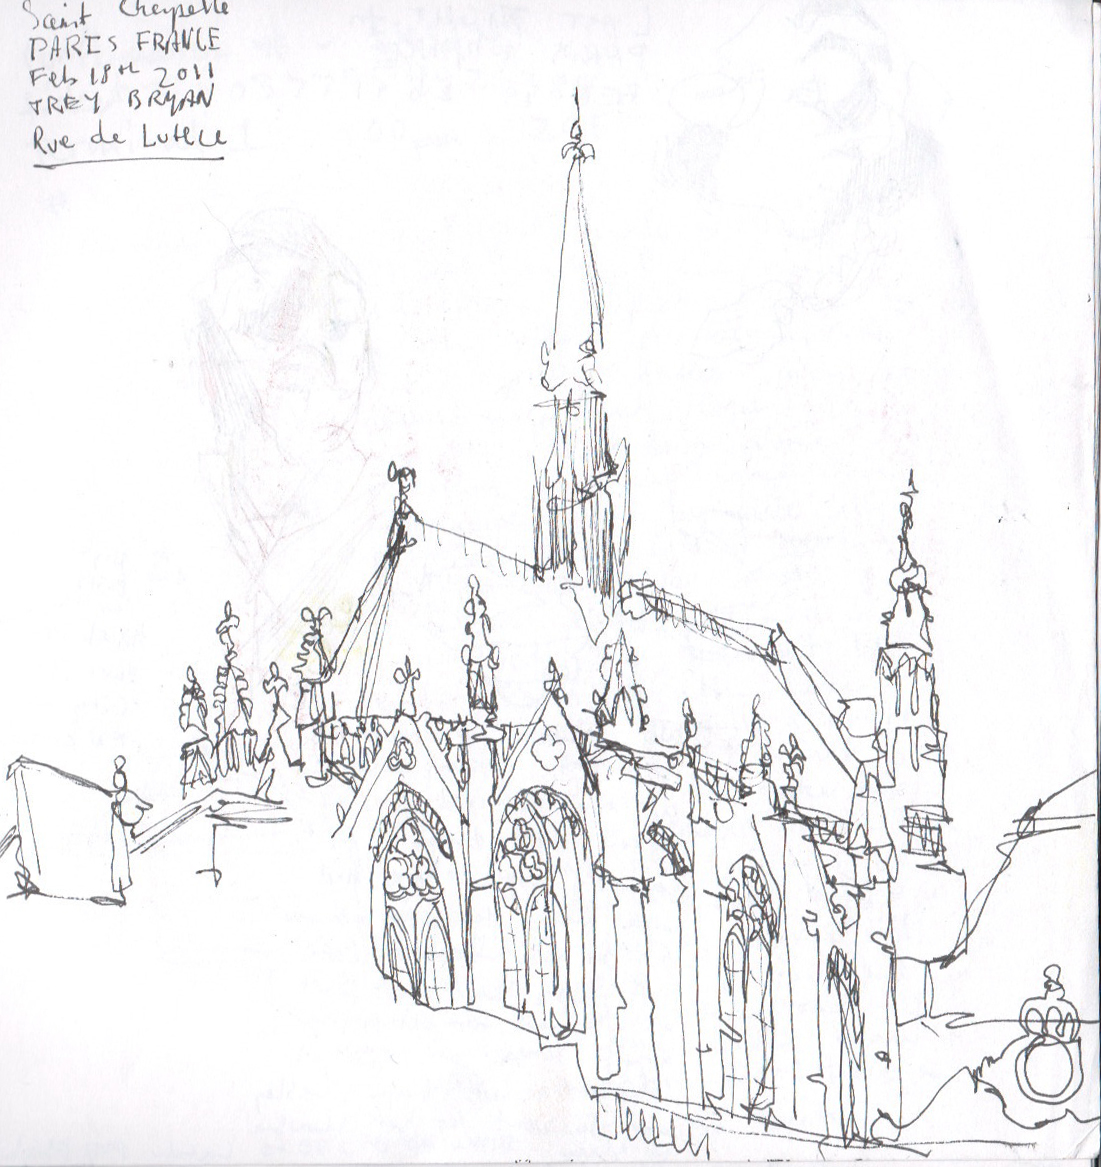 1101x1167 The Art Department Kcmo Trey Bryan's Sketchbook From Paris